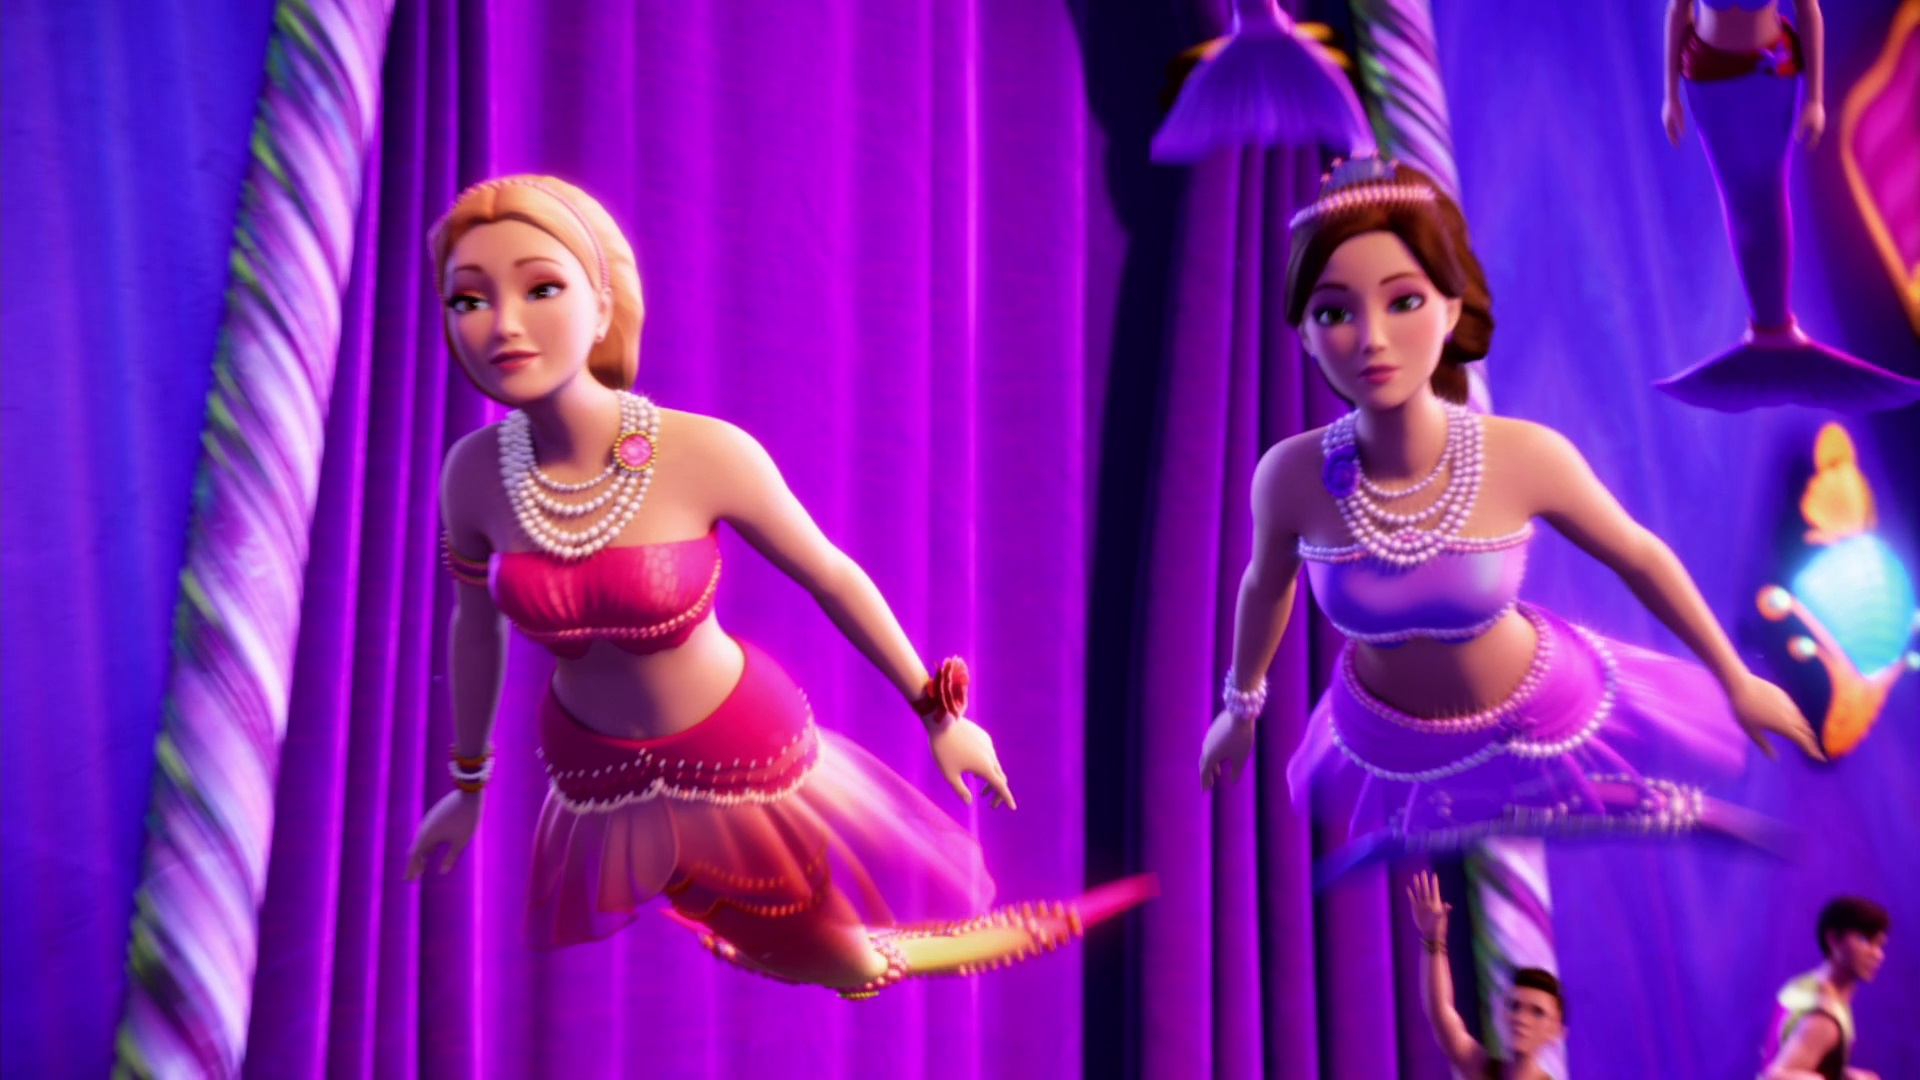 Barbie The Pearl Princess Wallpapers High Quality